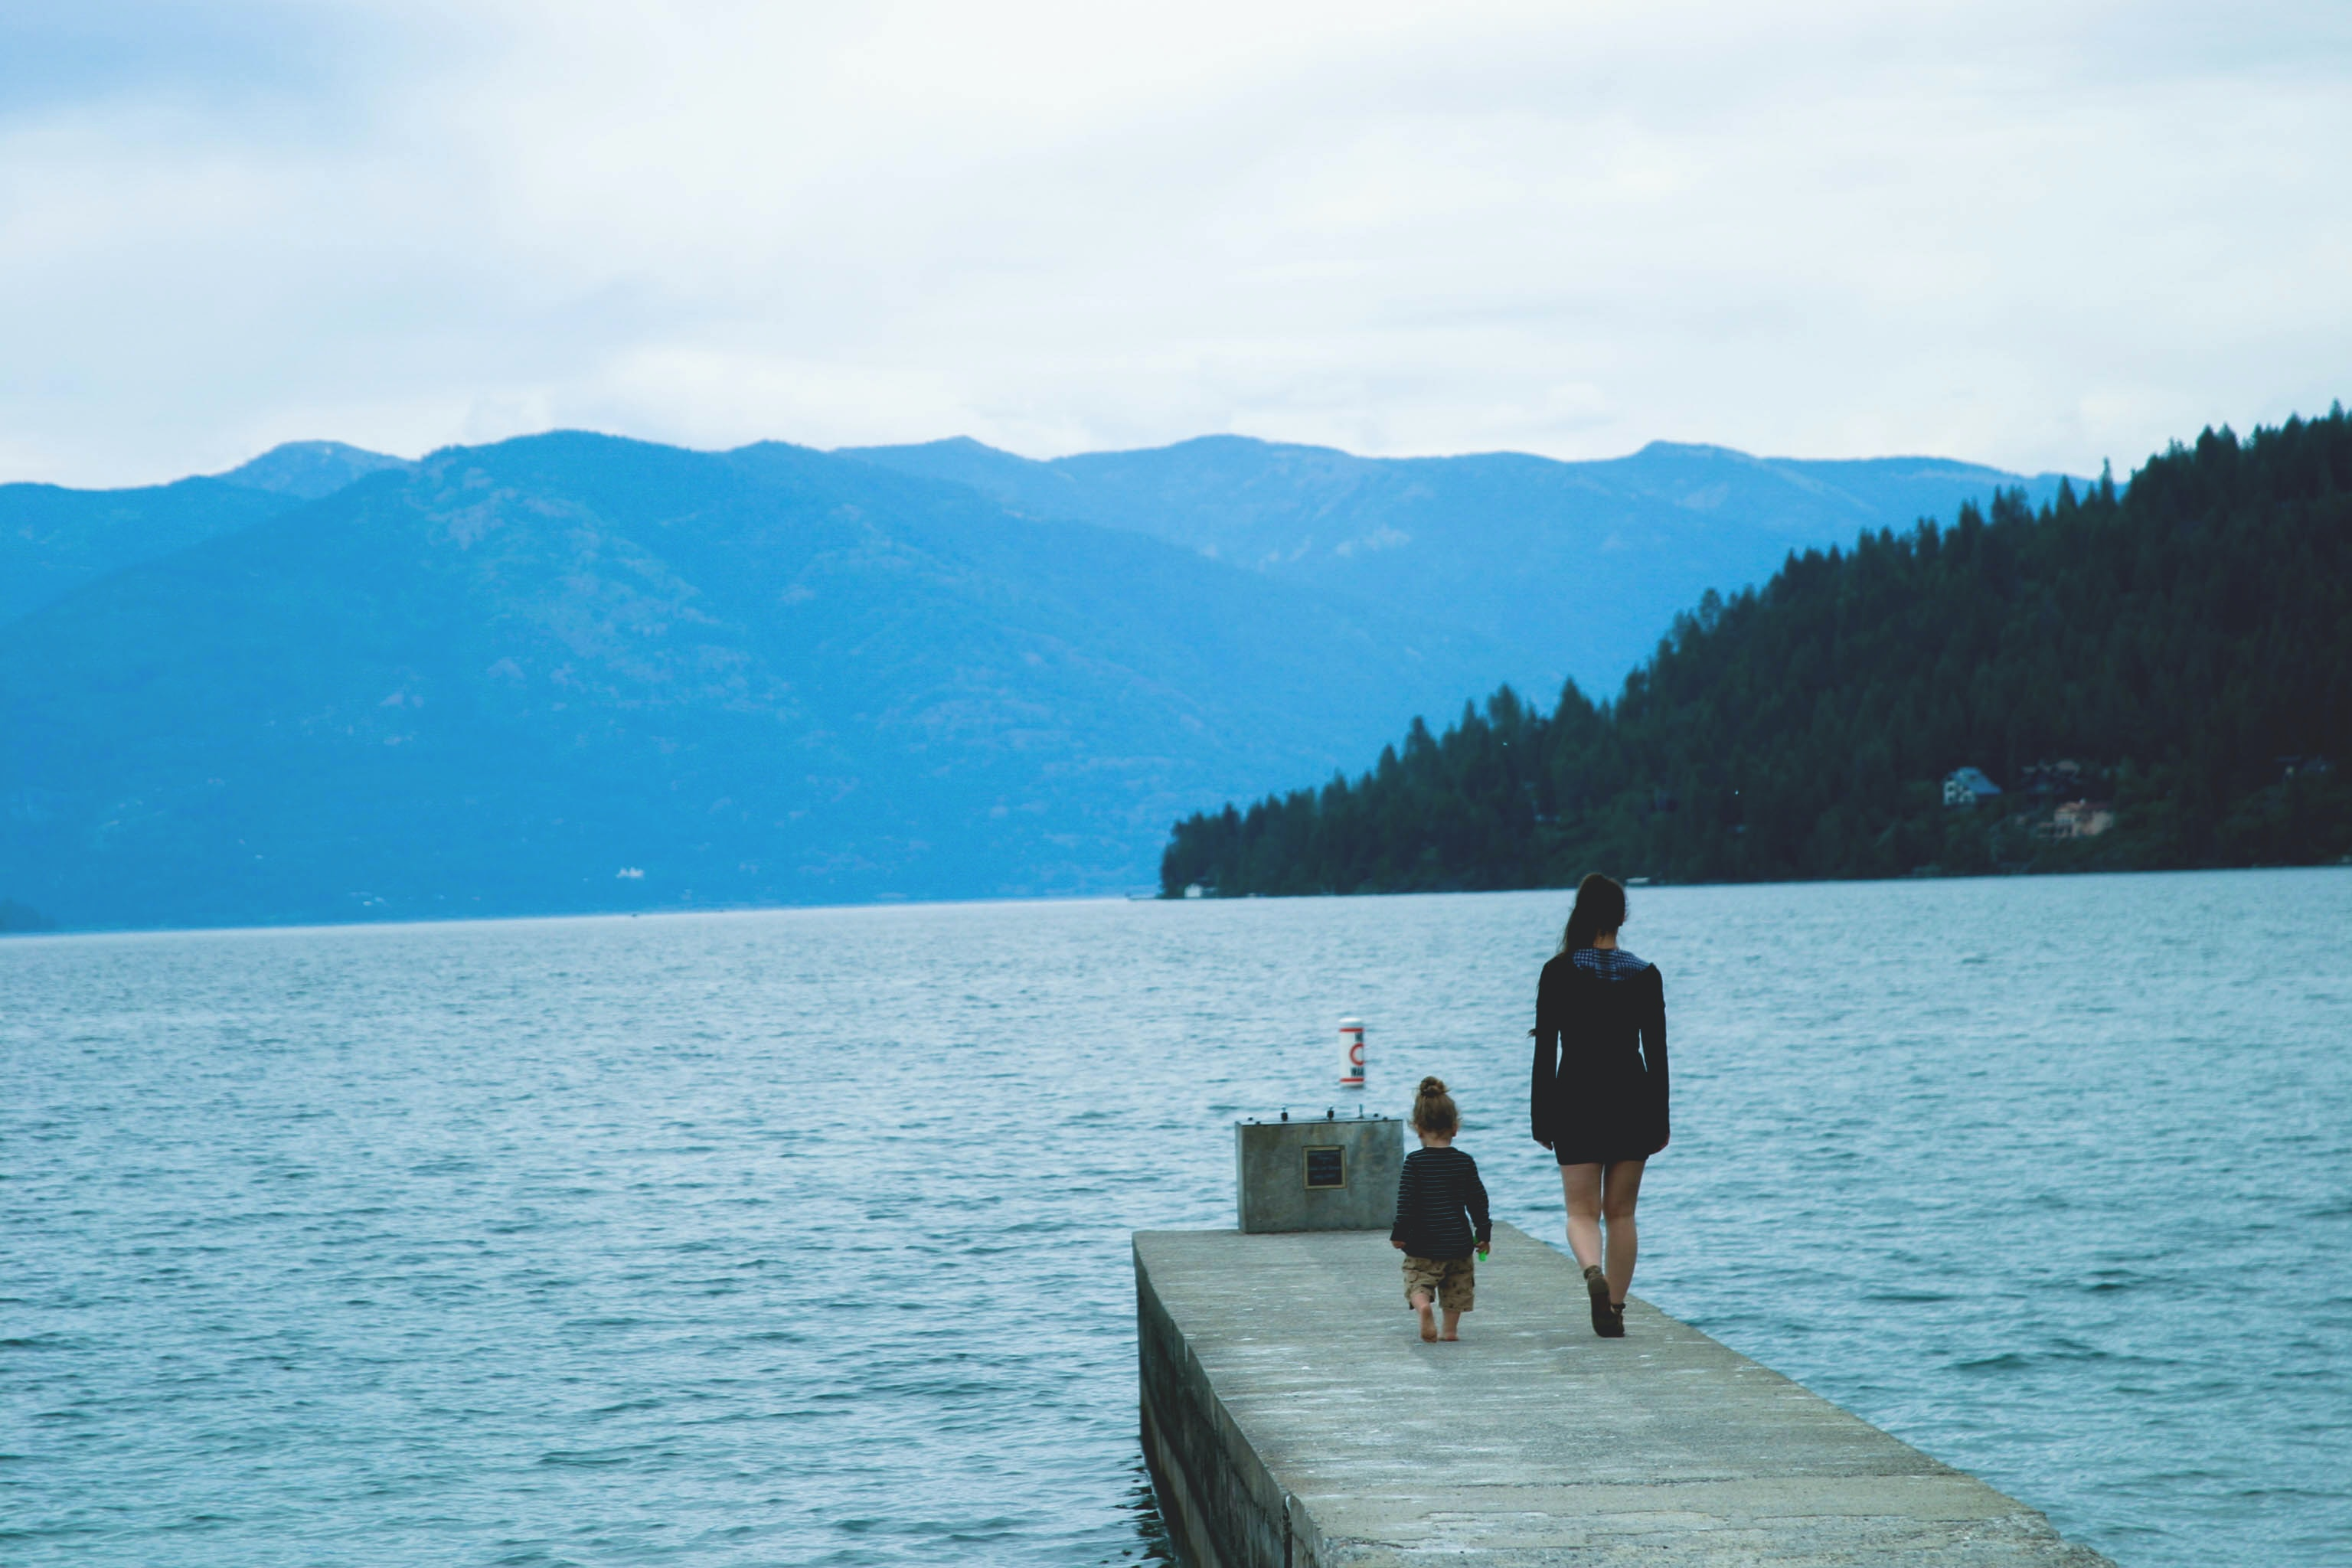 A woman and a child walking down a wooden dock towards a forest lake